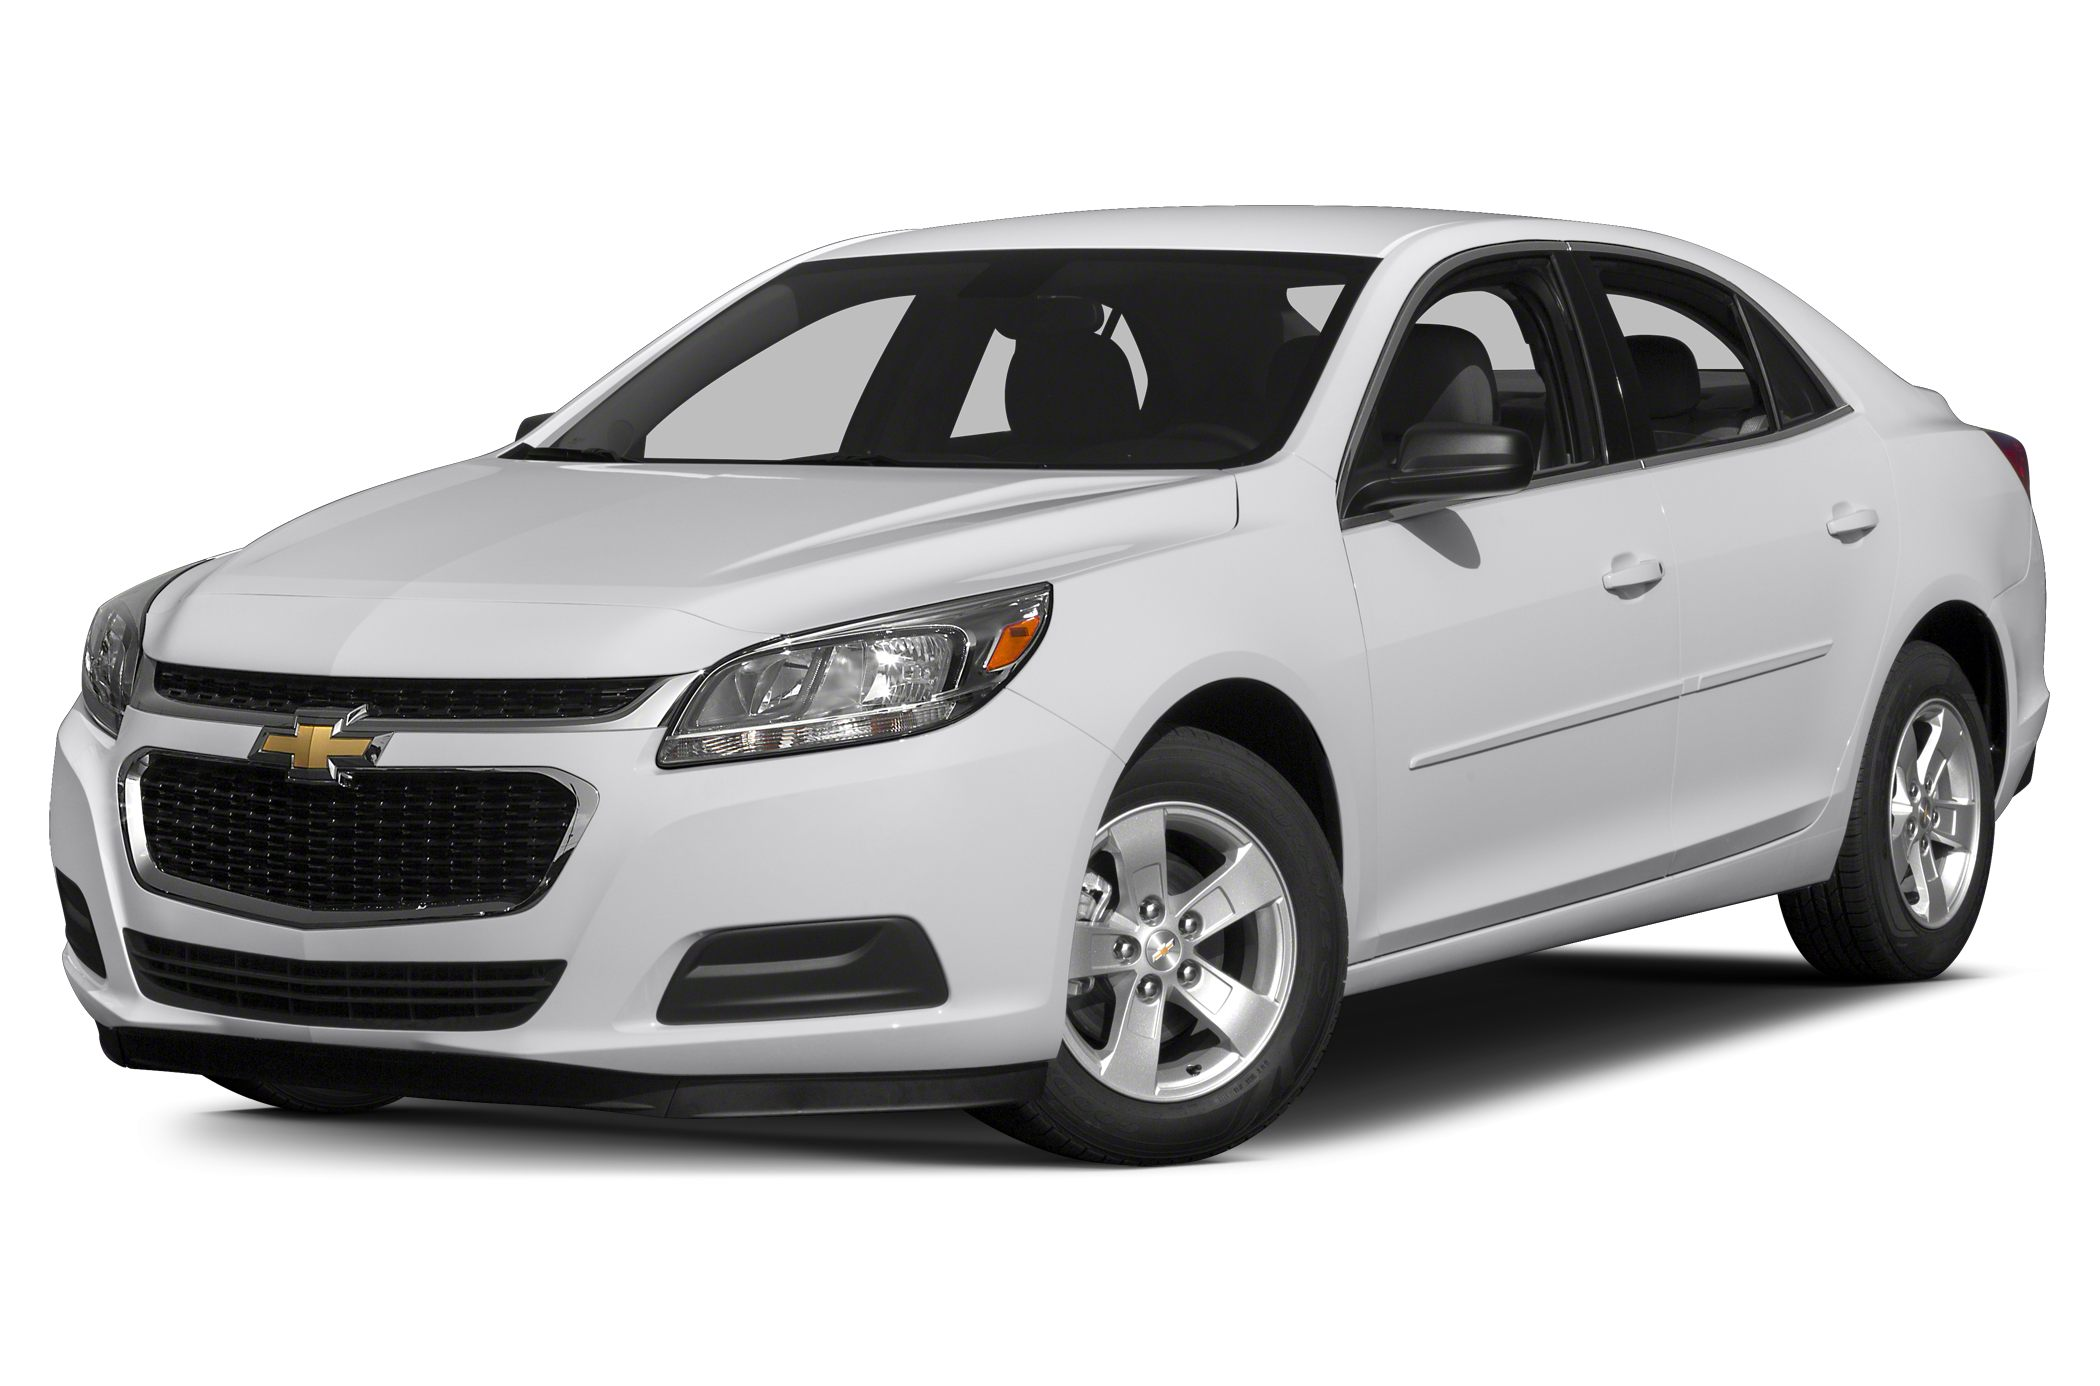 2015 Chevrolet Malibu 1LT Sedan for sale in Pampa for $25,985 with 0 miles.